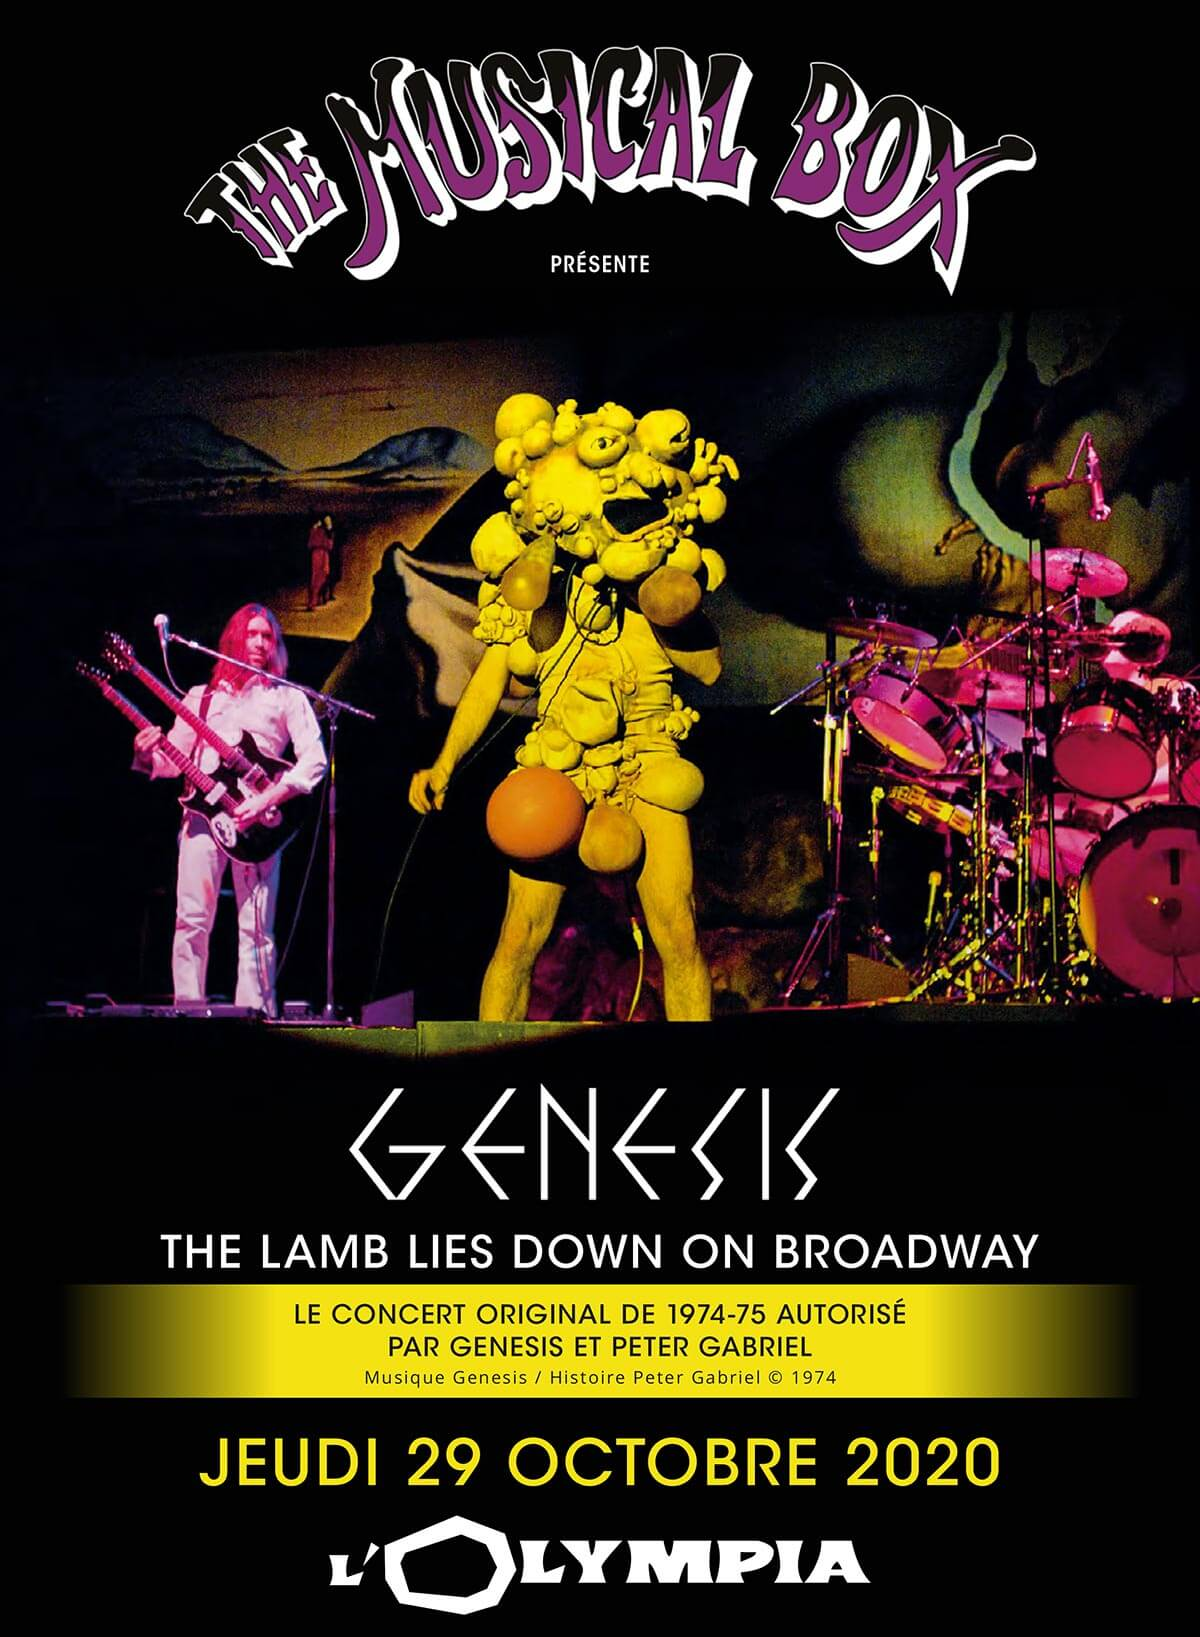 "The Musical Box présente Genesis ""The Lamb Lies Down On Broadway"" à L'Olympia le 29 octore 2020"